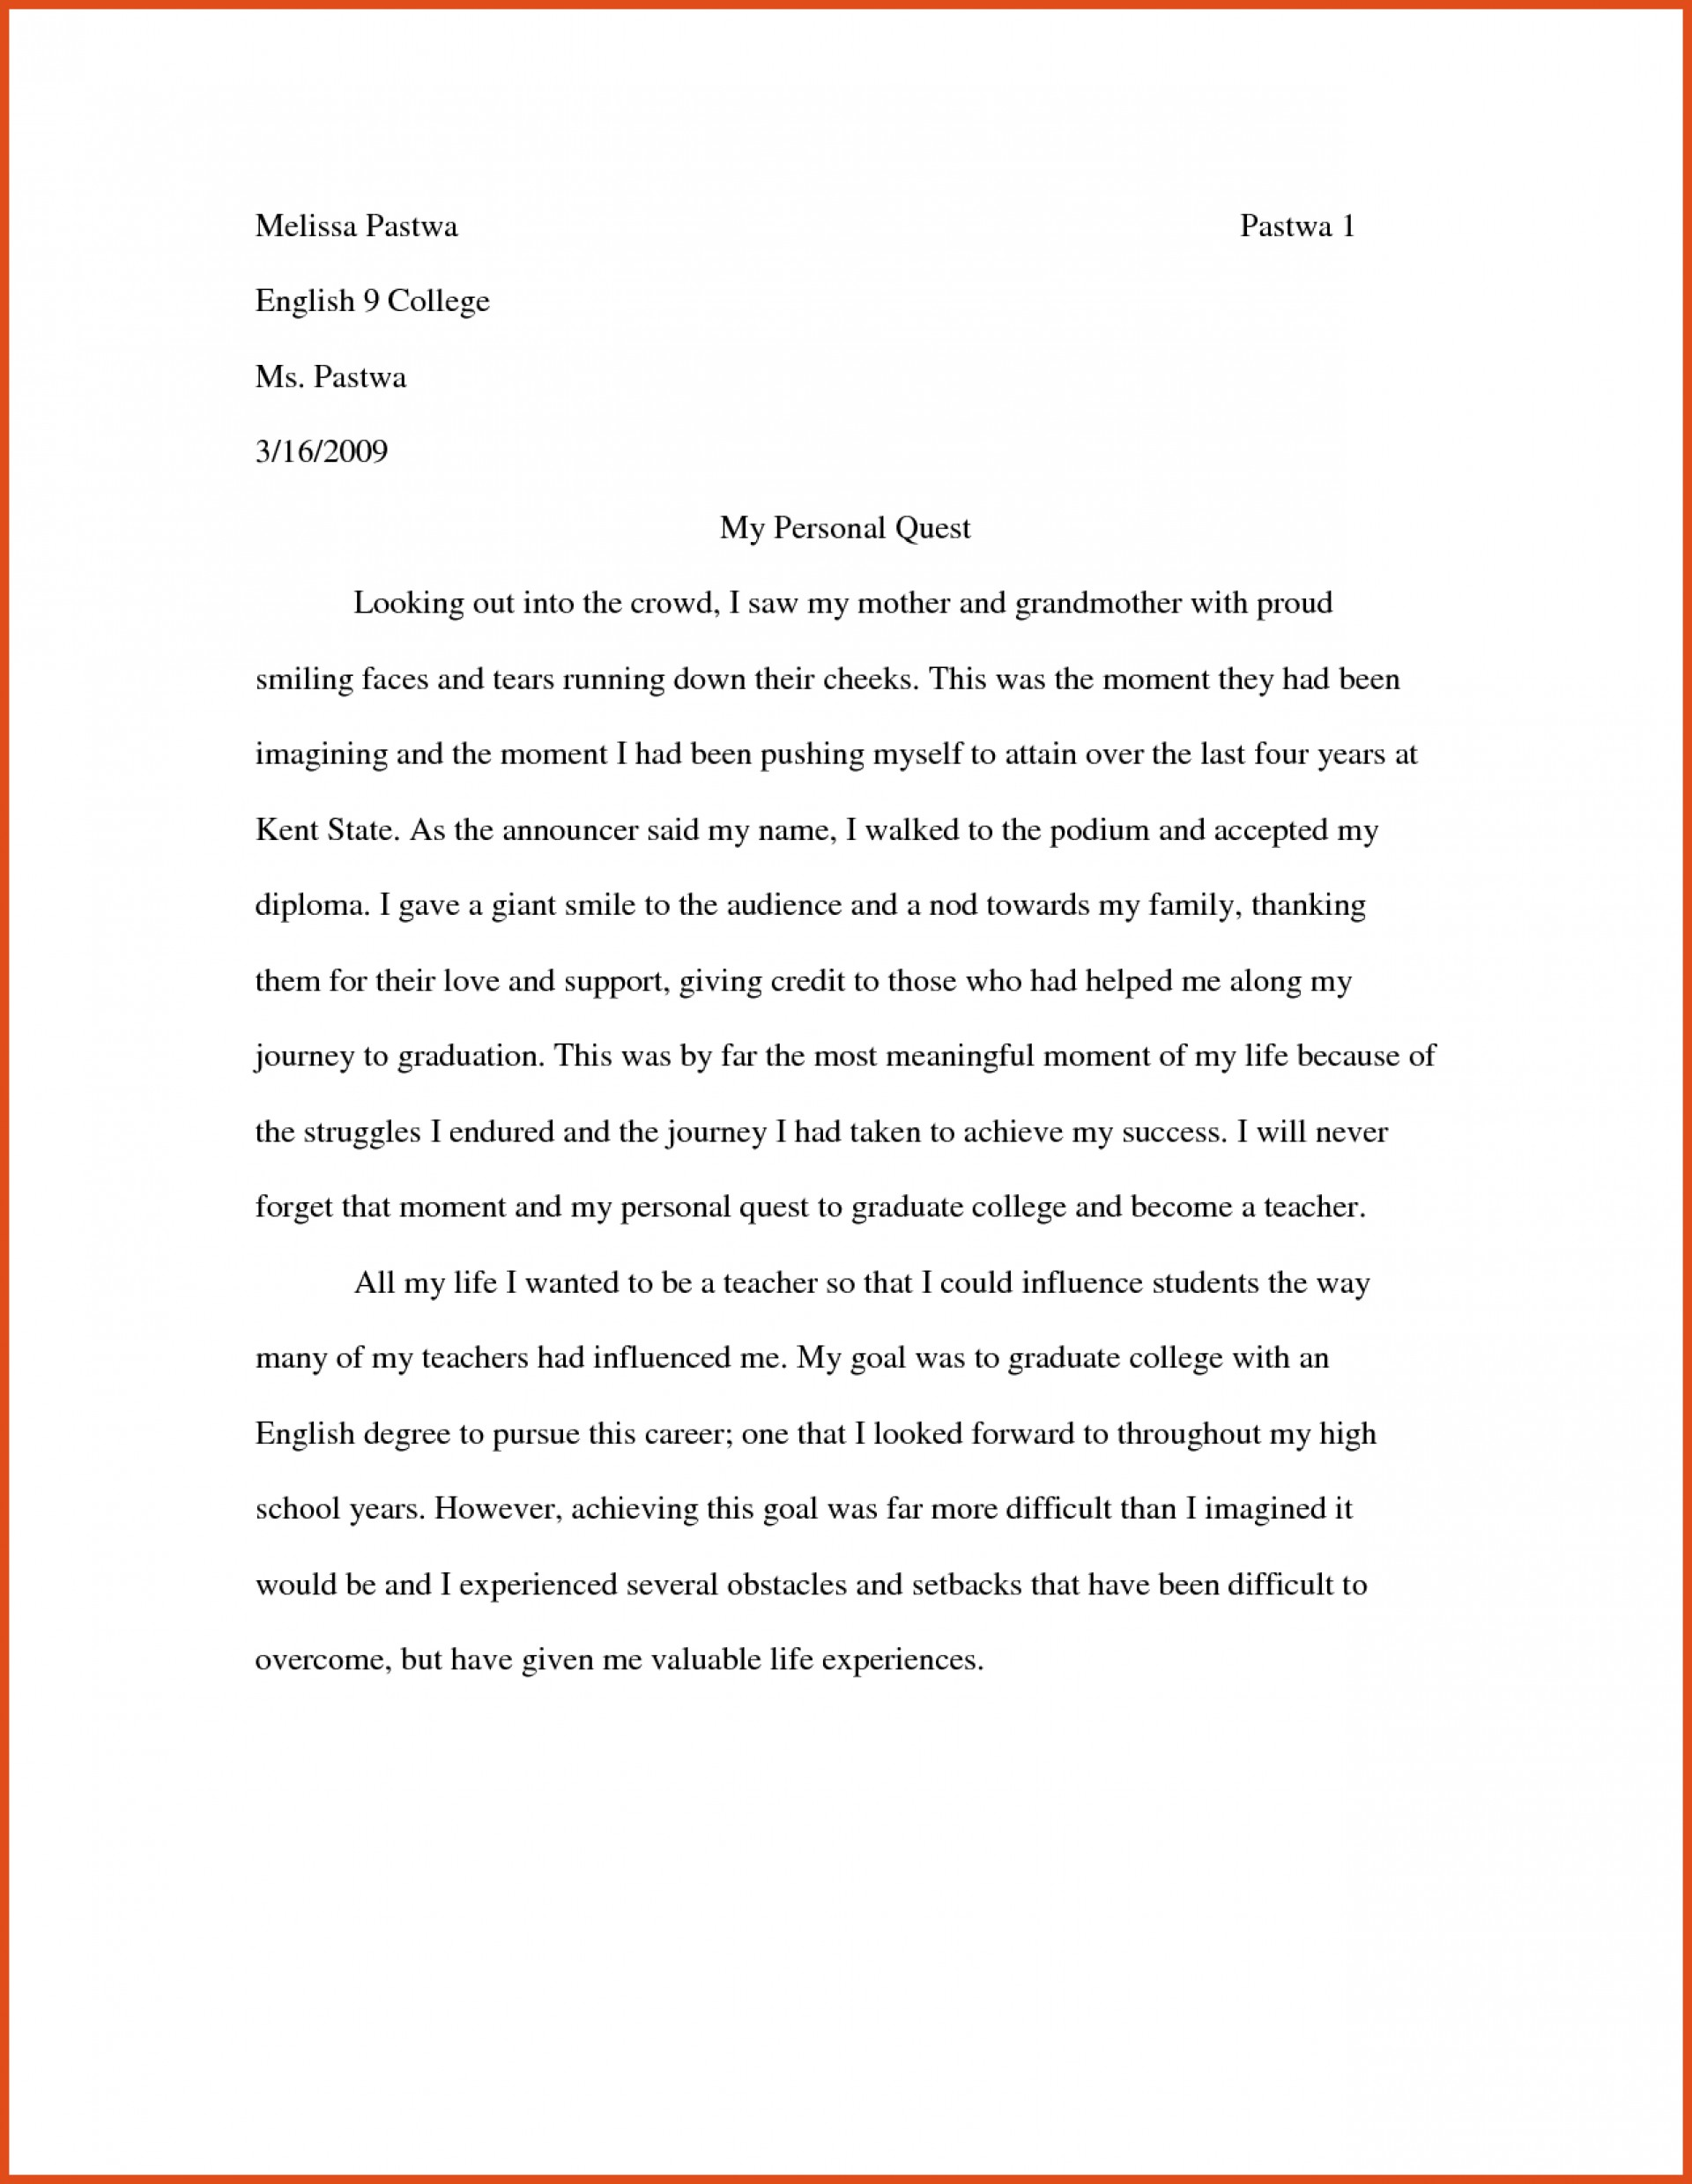 014 Narrative Essay By Students Example Of Storytelling Examples For Middle School High Introduction College With Citations About Myself Sat Mla Gre Archaicawful Childhood Memory Losing Loved One Excellent Spm 1920